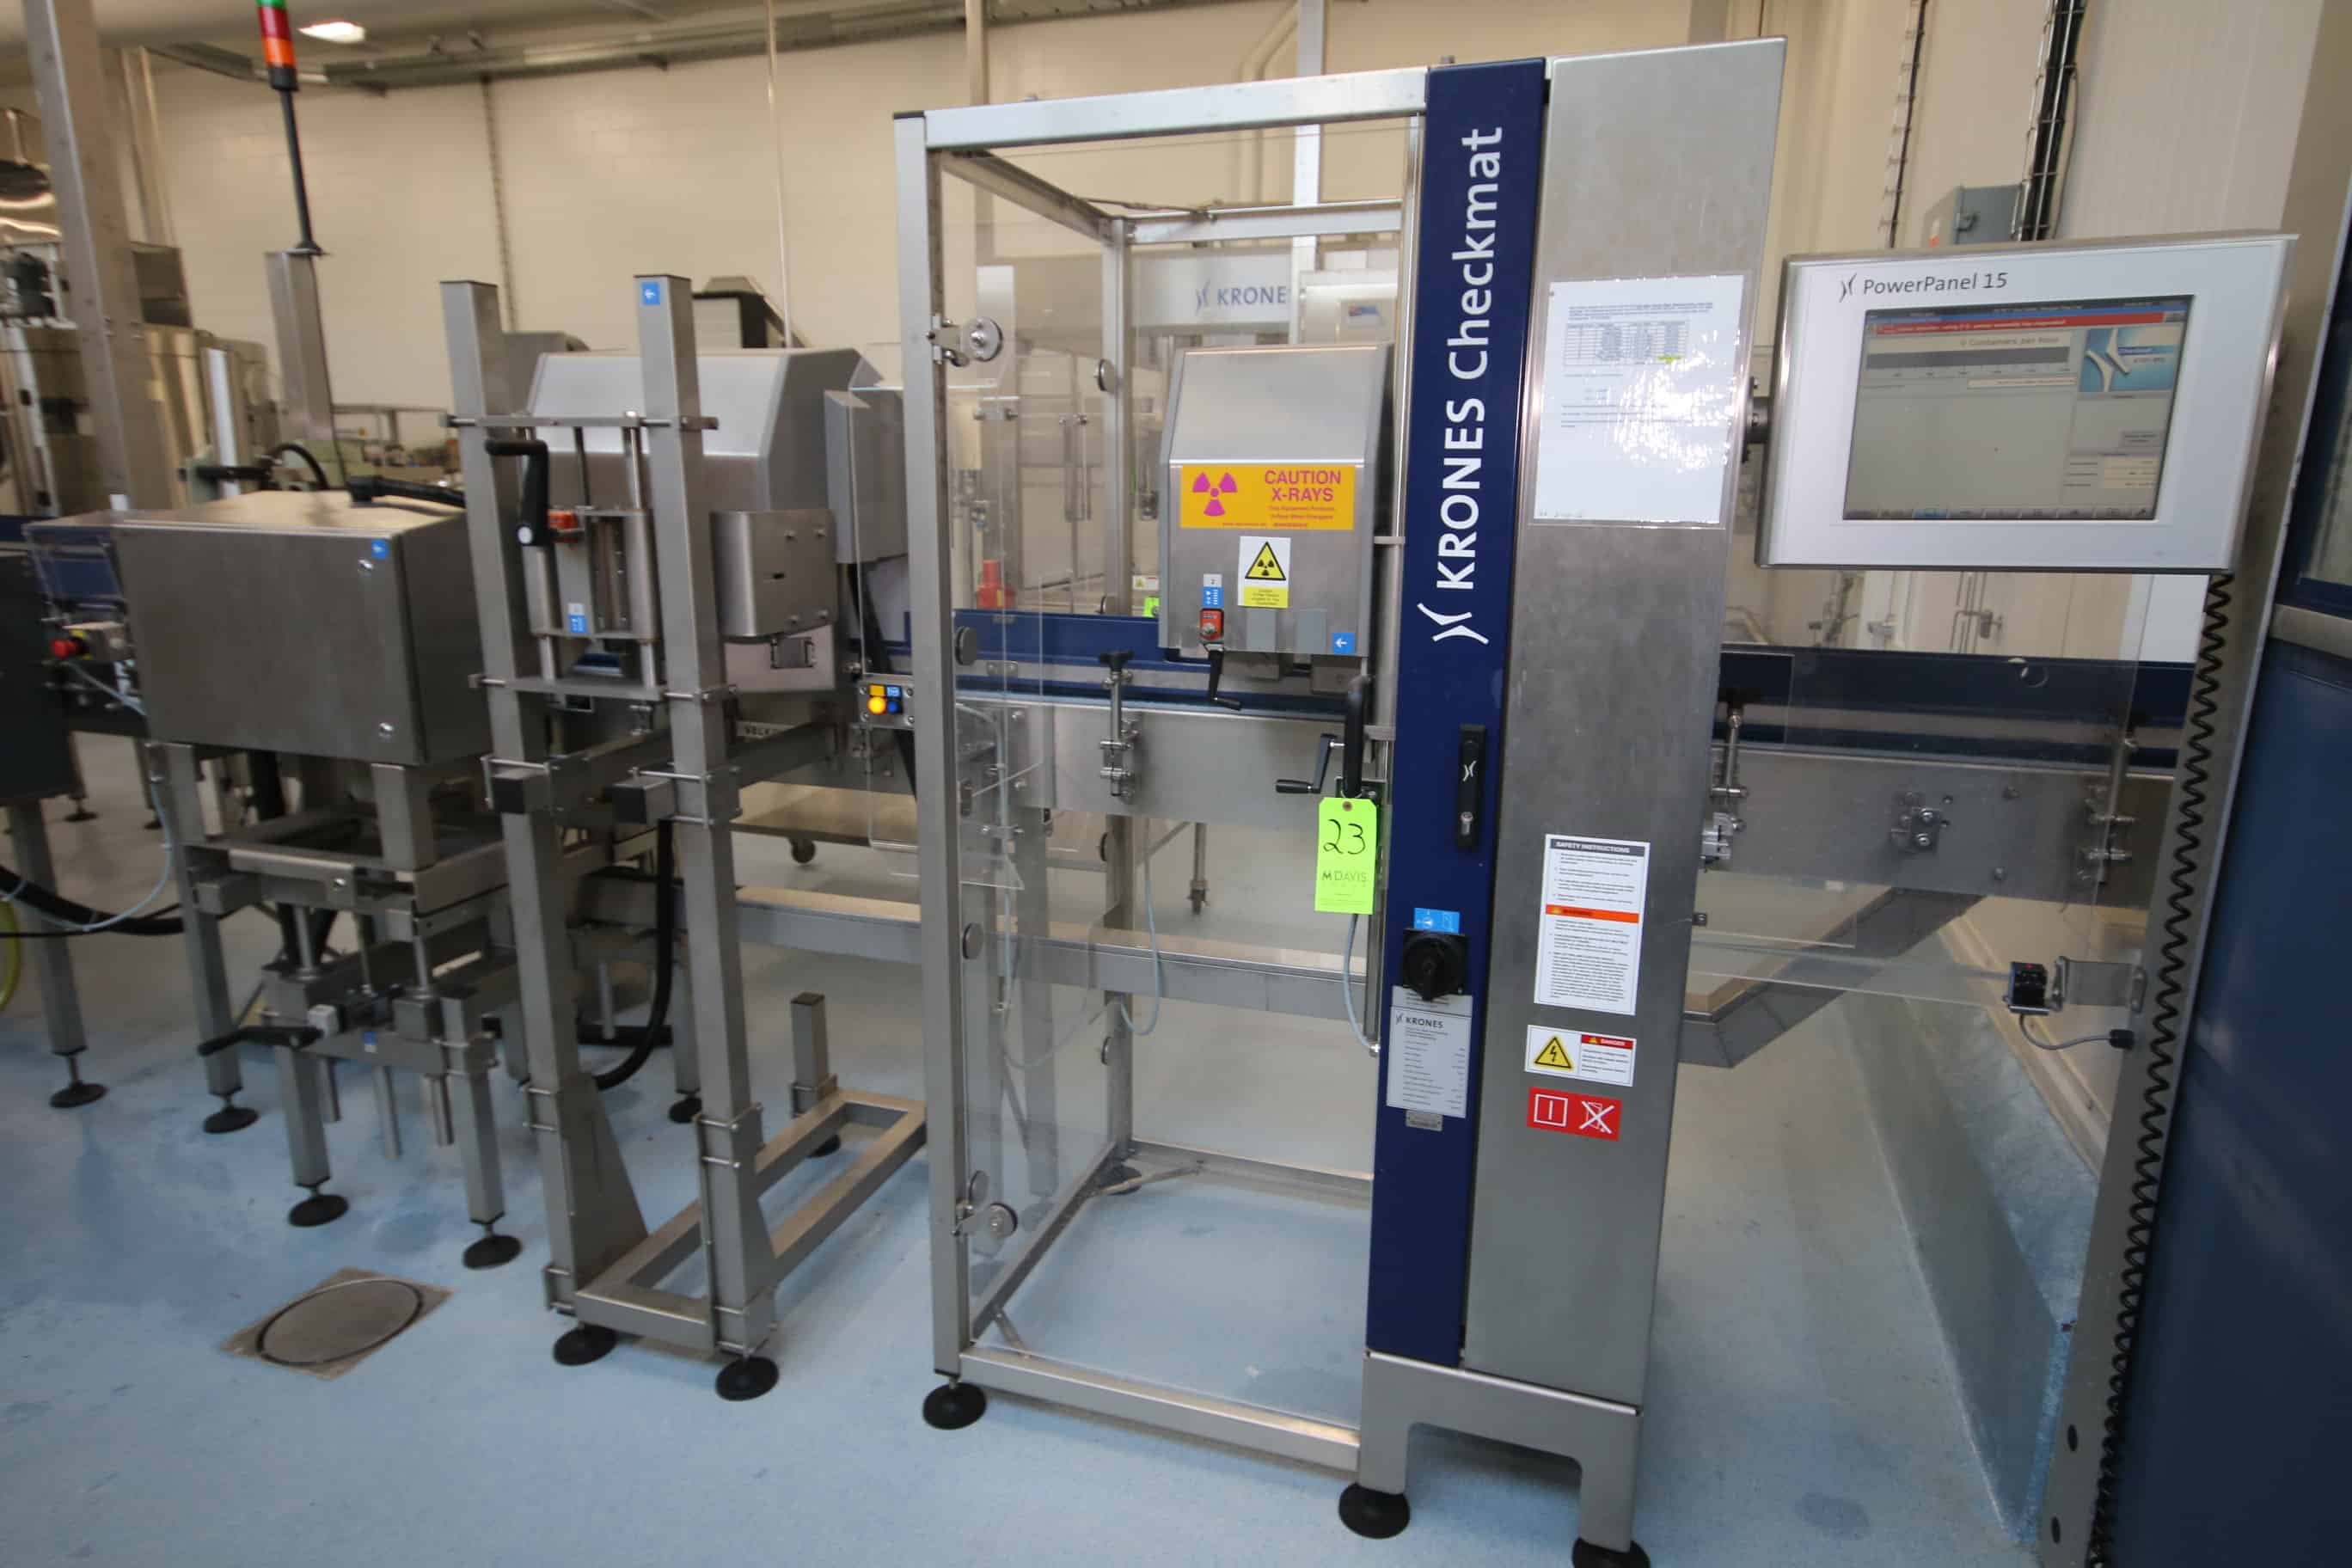 2009 Krones Checkmat Bottle Inspection Station, M/N 731 FM-X+L, S/N K731-953, with (2) Camera Stations, 230 Volts, with Power Panel 15 Touchscreen with Controls